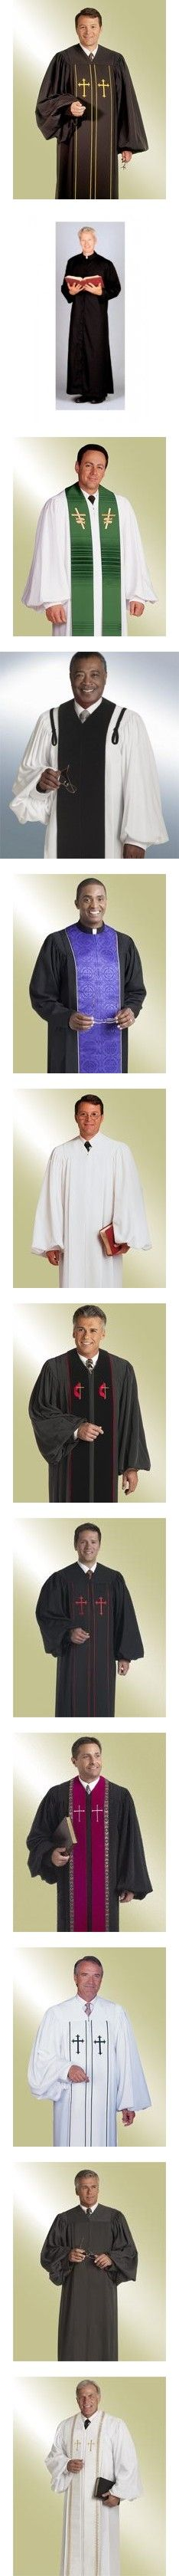 61 best Men\'s Pastor Robes images on Pinterest   Pastor, Robe and Robes